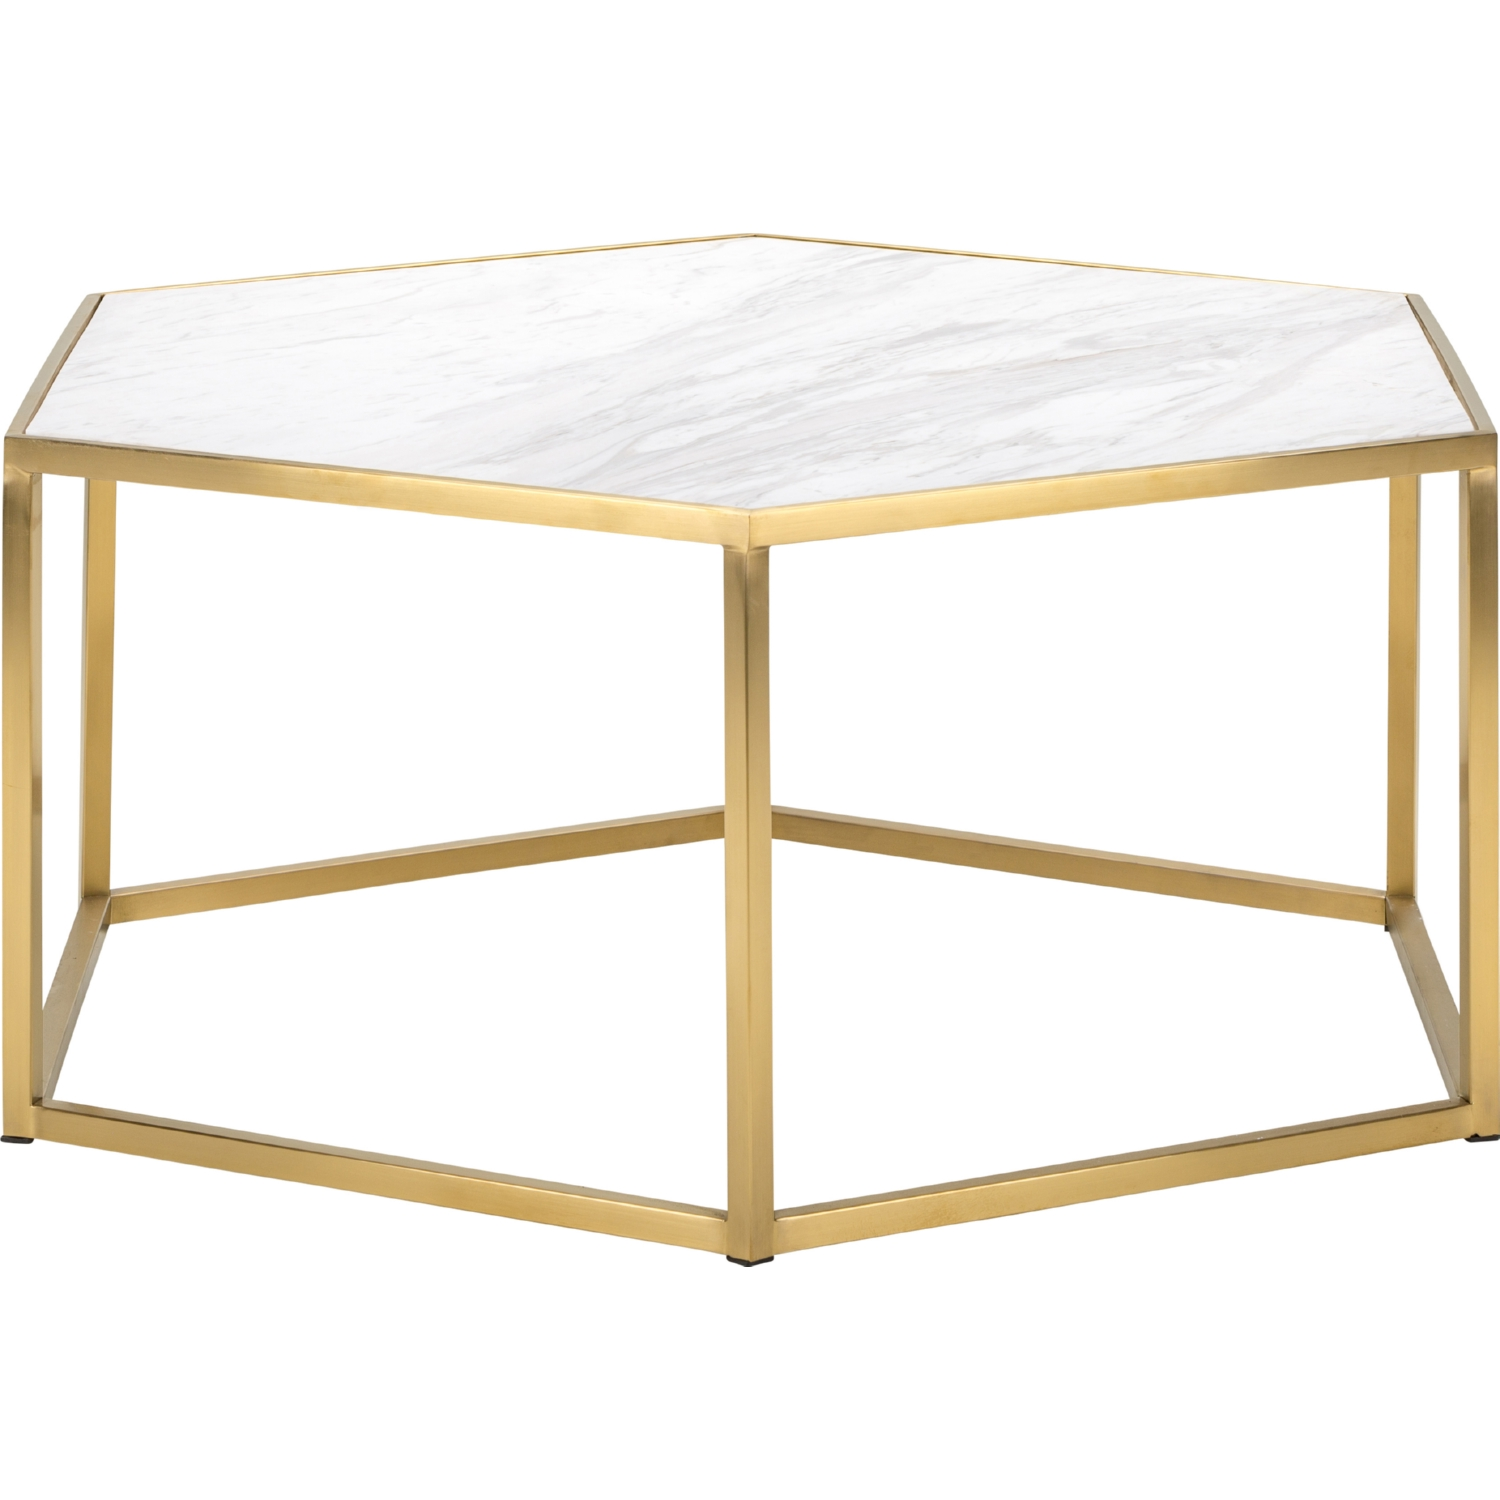 nuevo modern furniture hgtb425 hexion coffee table w white marble